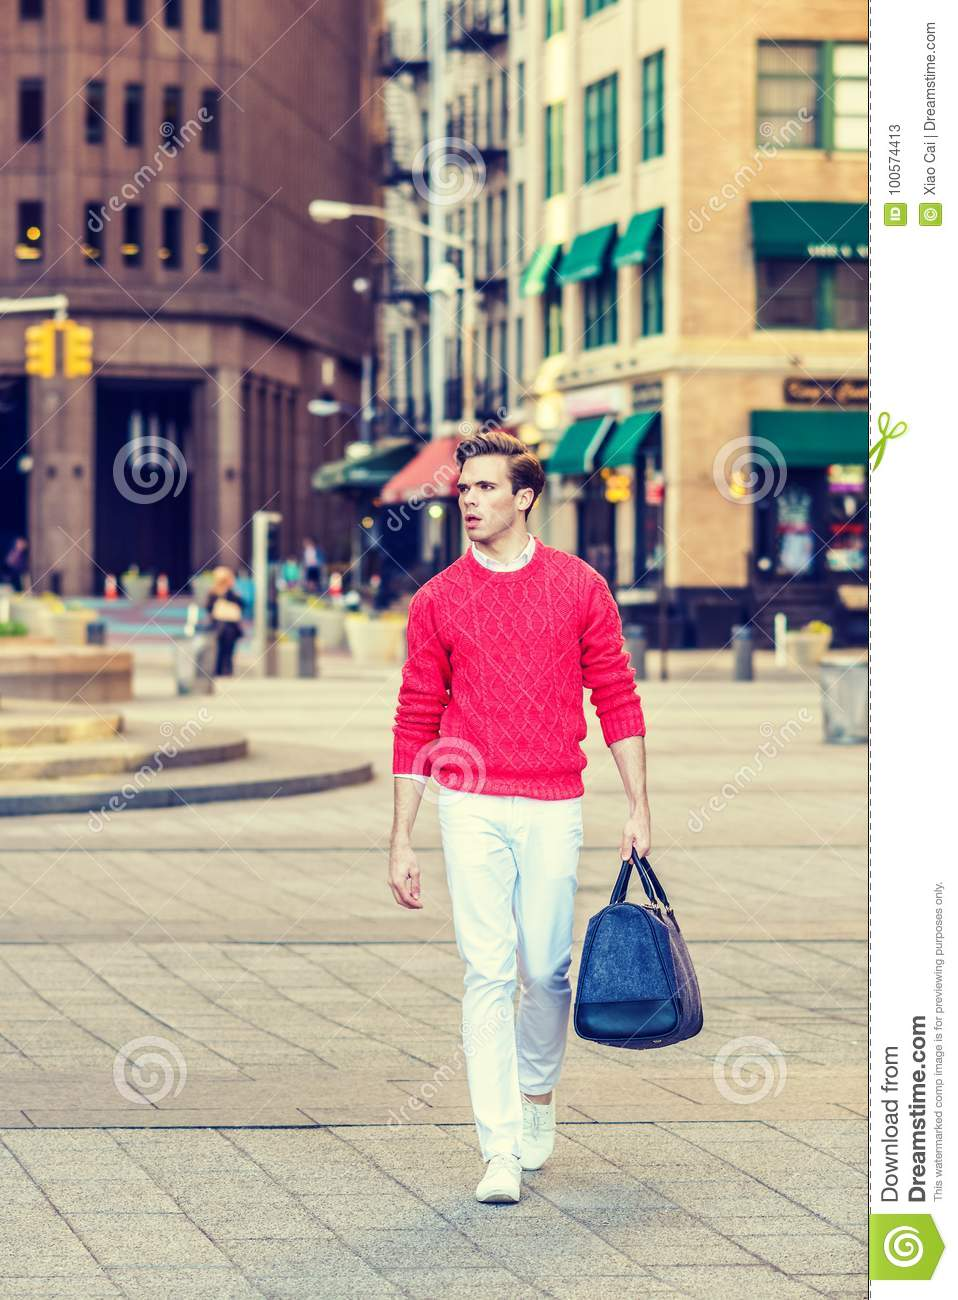 f1b4cf0971 Young Man Street Fashion stock image. Image of shoes - 100574413